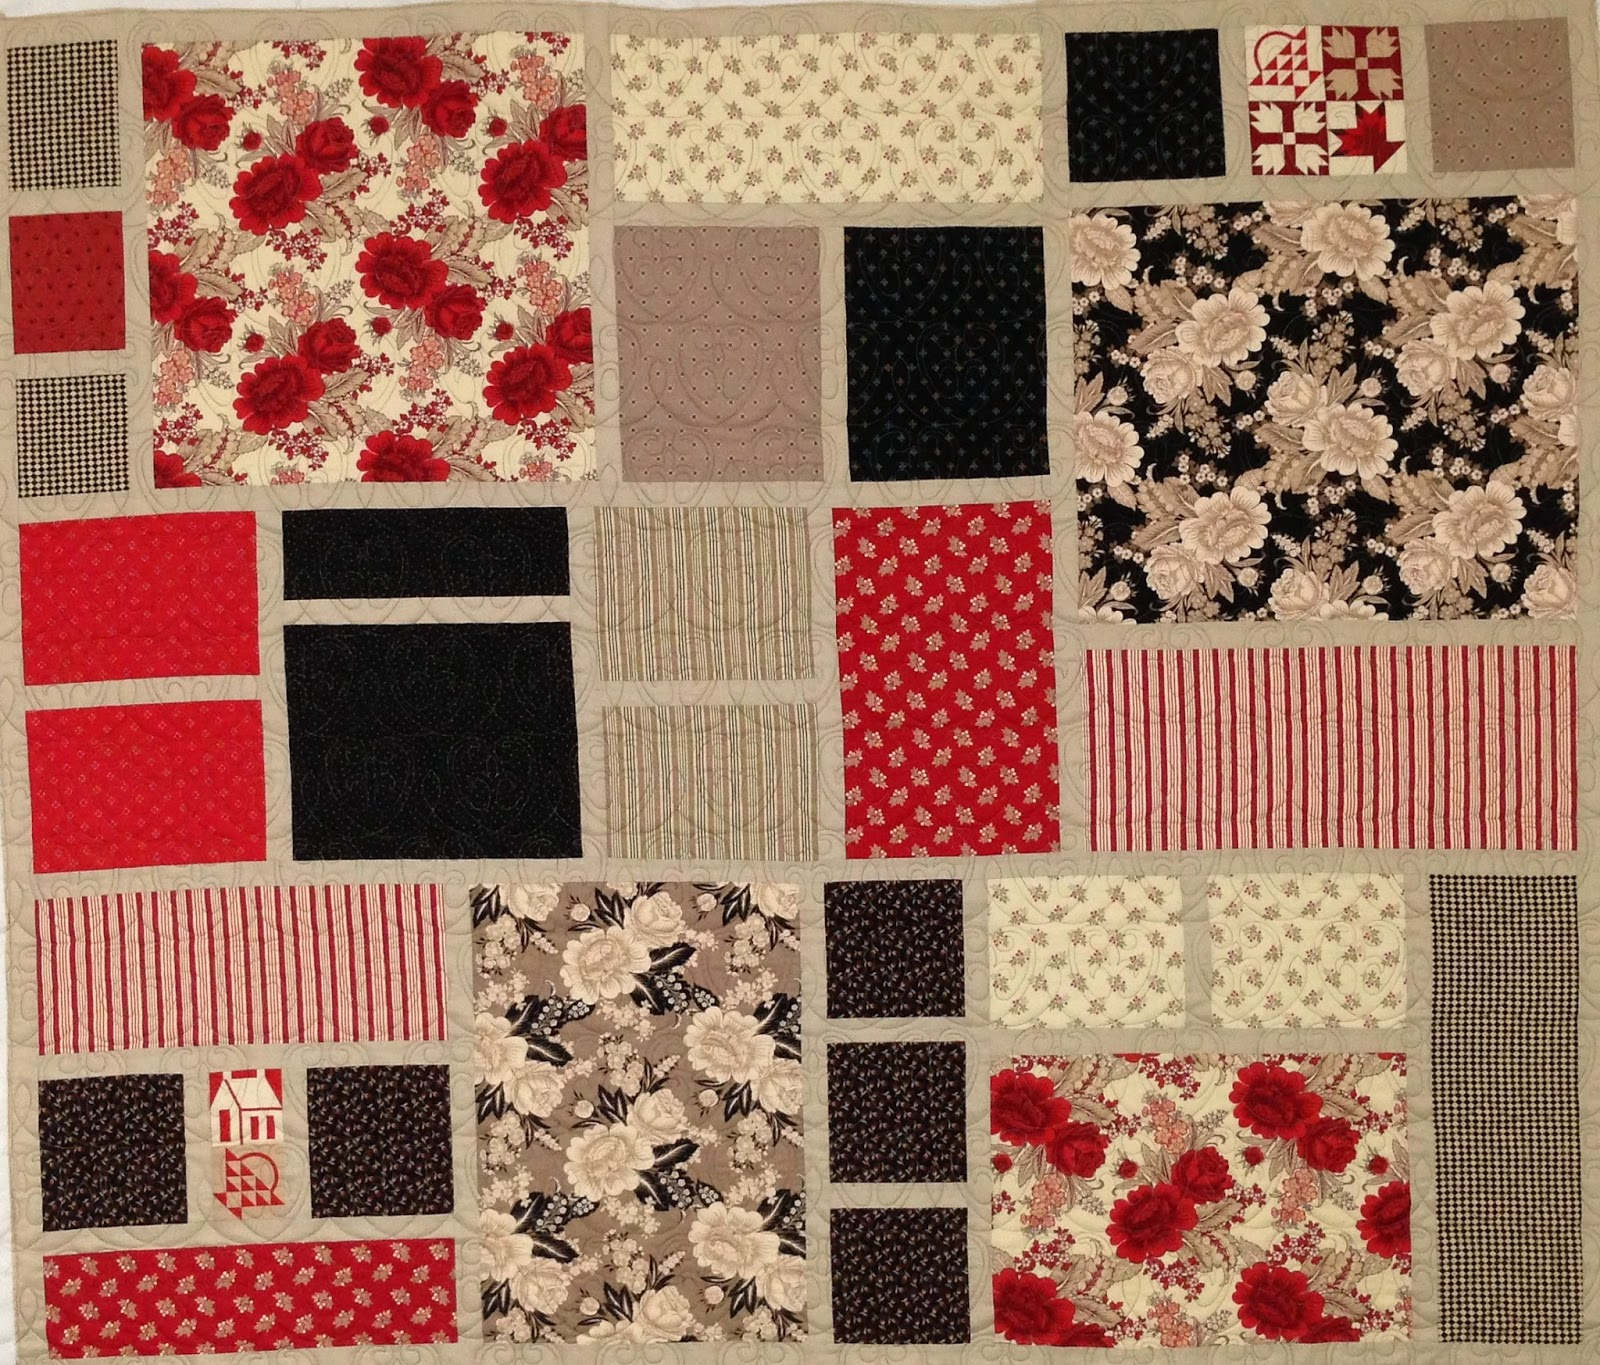 Trish Wells Red, Tan and Black Squares Quilt